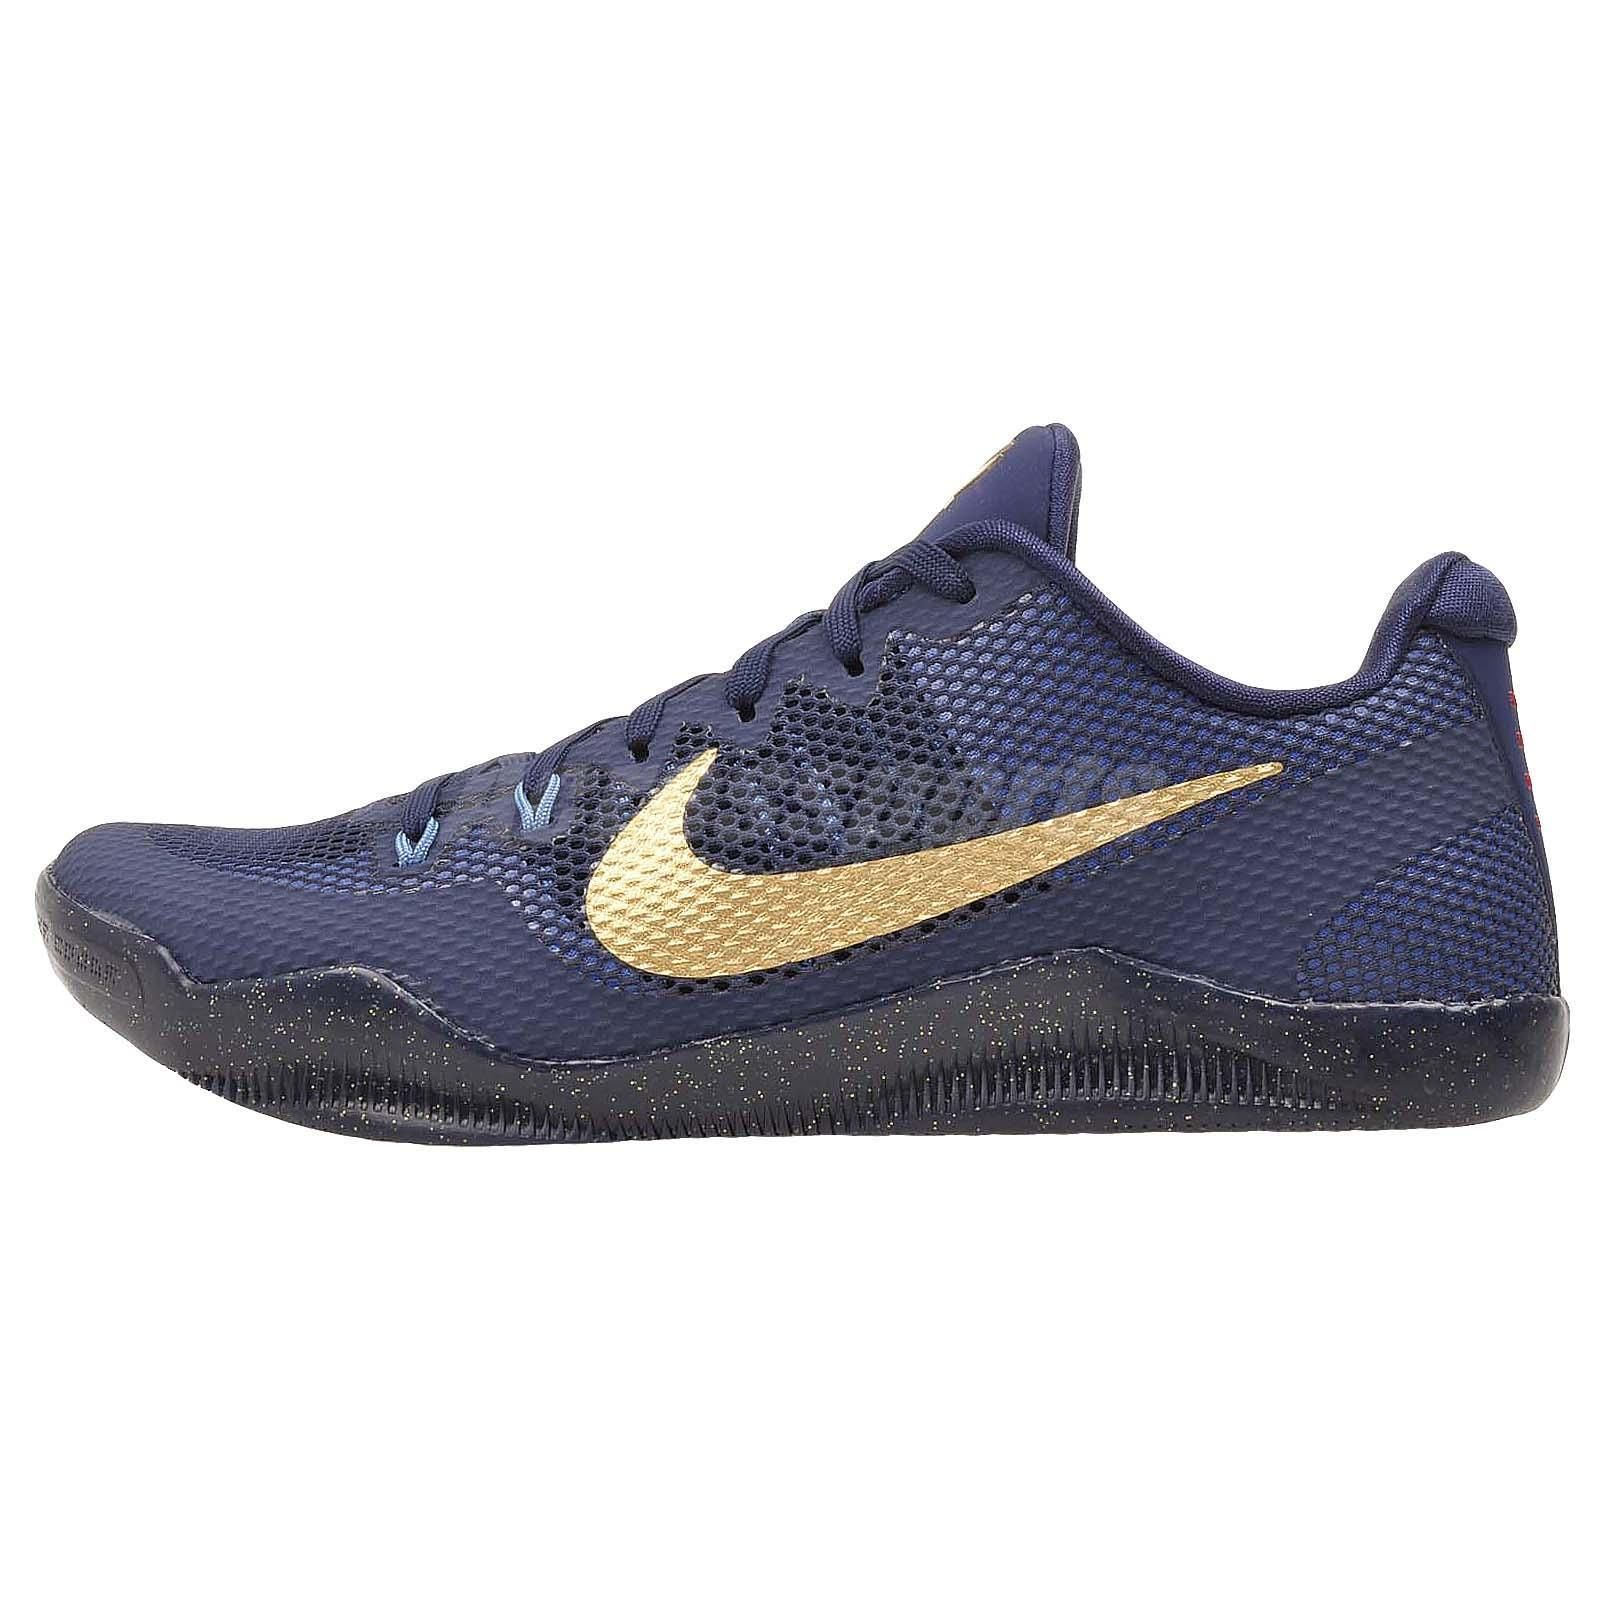 wholesale dealer 157e4 0bad8 Nike KOBE XI Basketball Mens Shoes Philippines Midnight Navy 836183-447